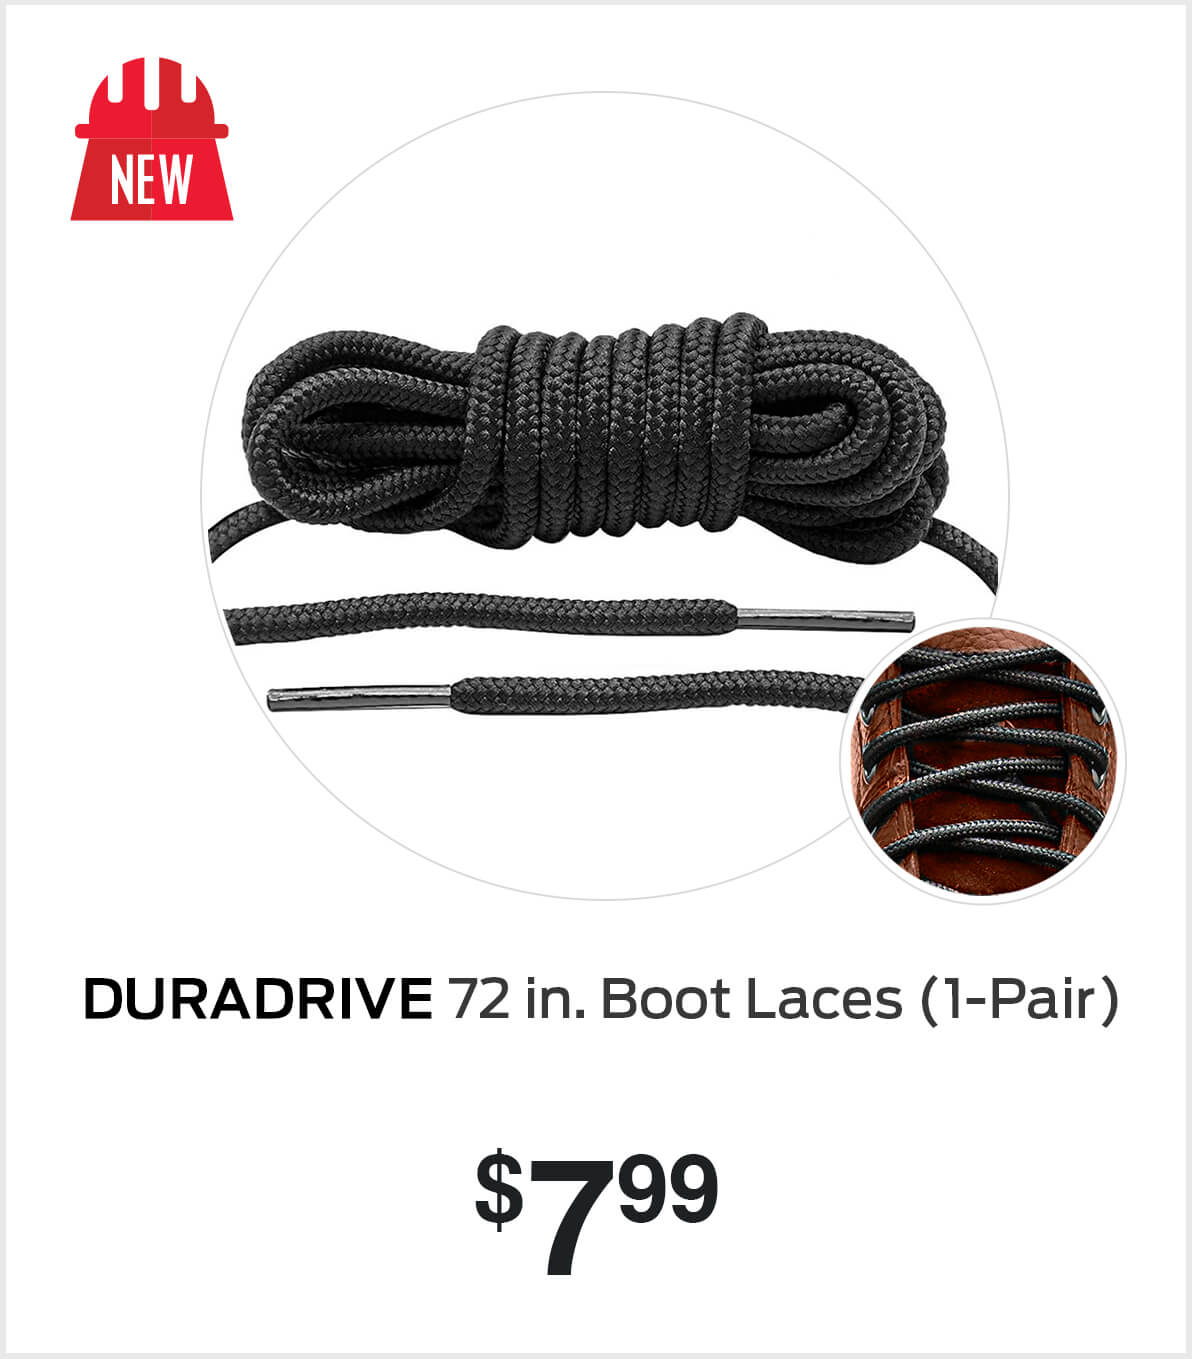 Shop DuraDrive 72 in. Boot Laces (1-Pair)